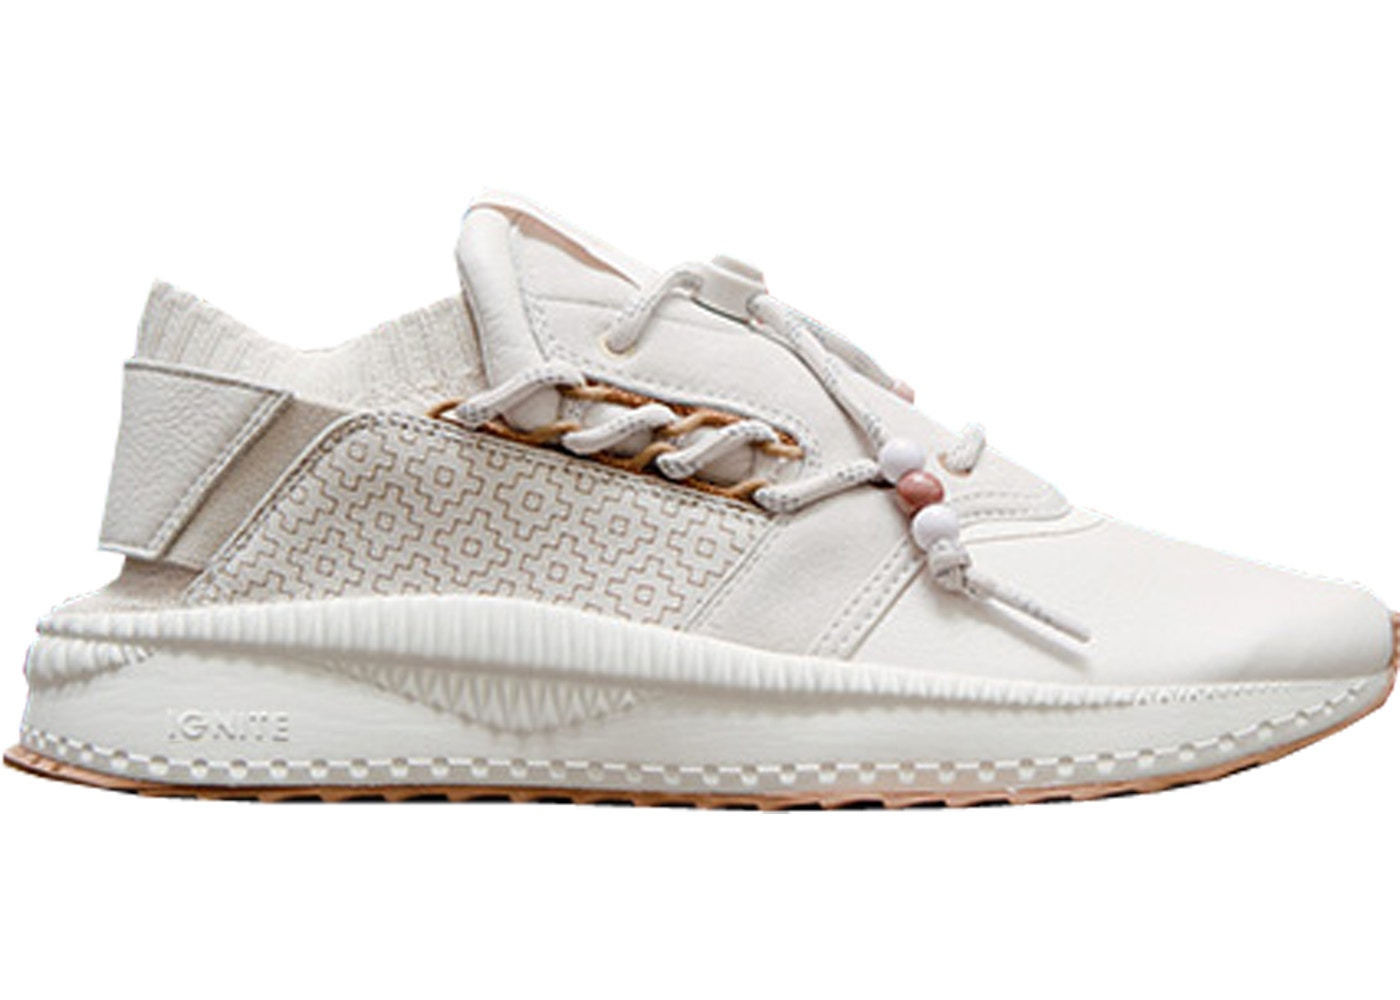 Puma Tsugi Shinsei Foot Patrol Sashiko White by Stock X